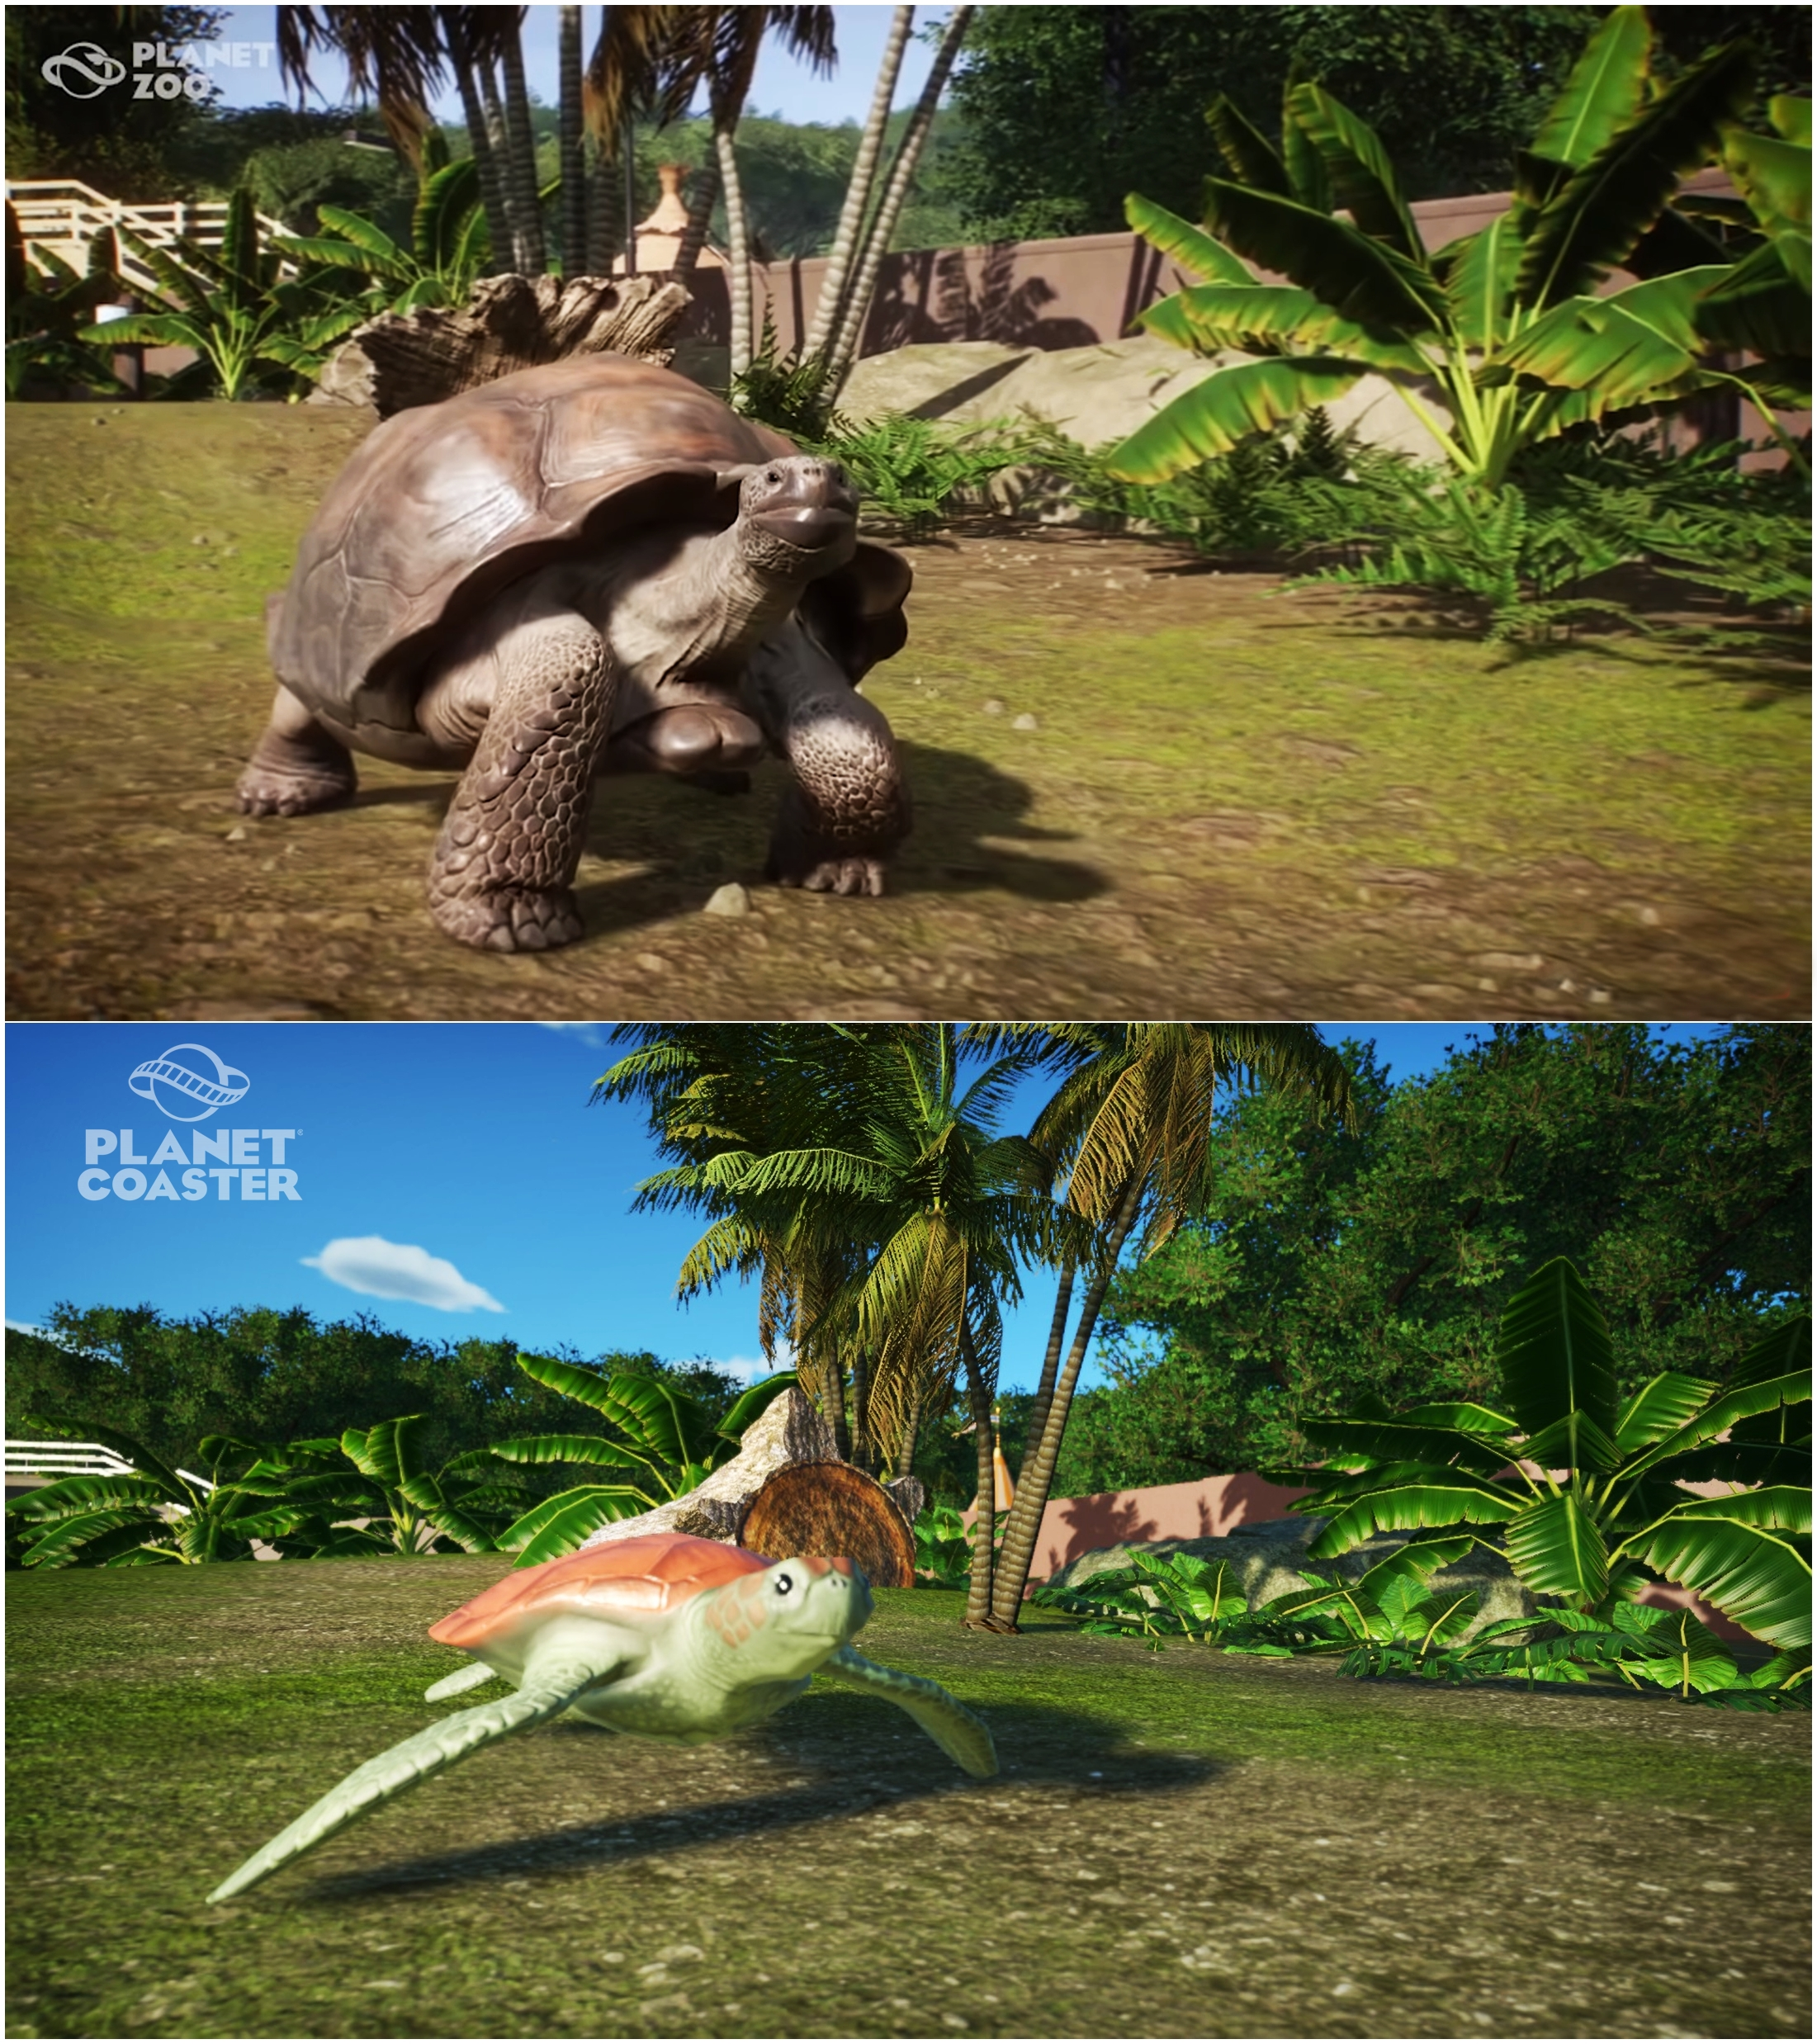 Planet Zoo Vs Planet Coaster Recreate From Giant Galapagos Tortoise Clip Planetcoaster